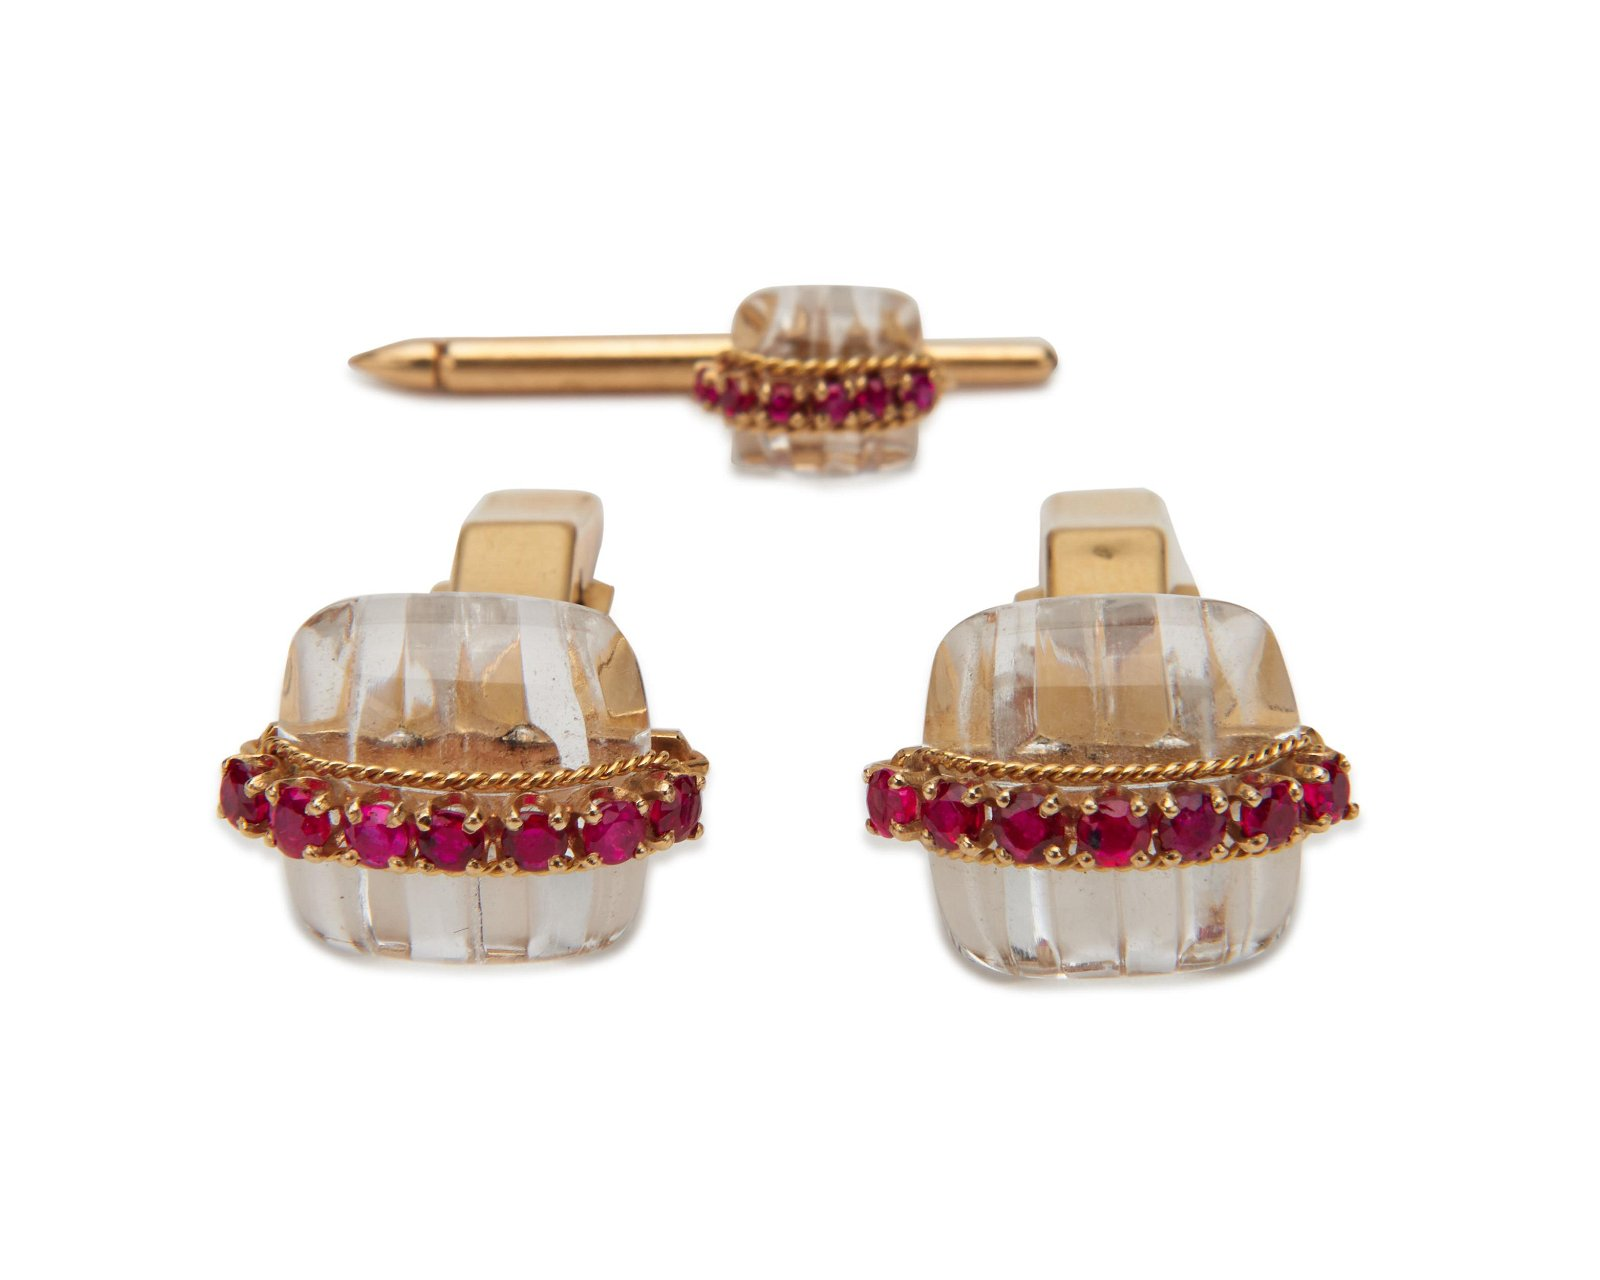 CARTIER 18K Gold, Rock Crystal, and Ruby Cufflinks